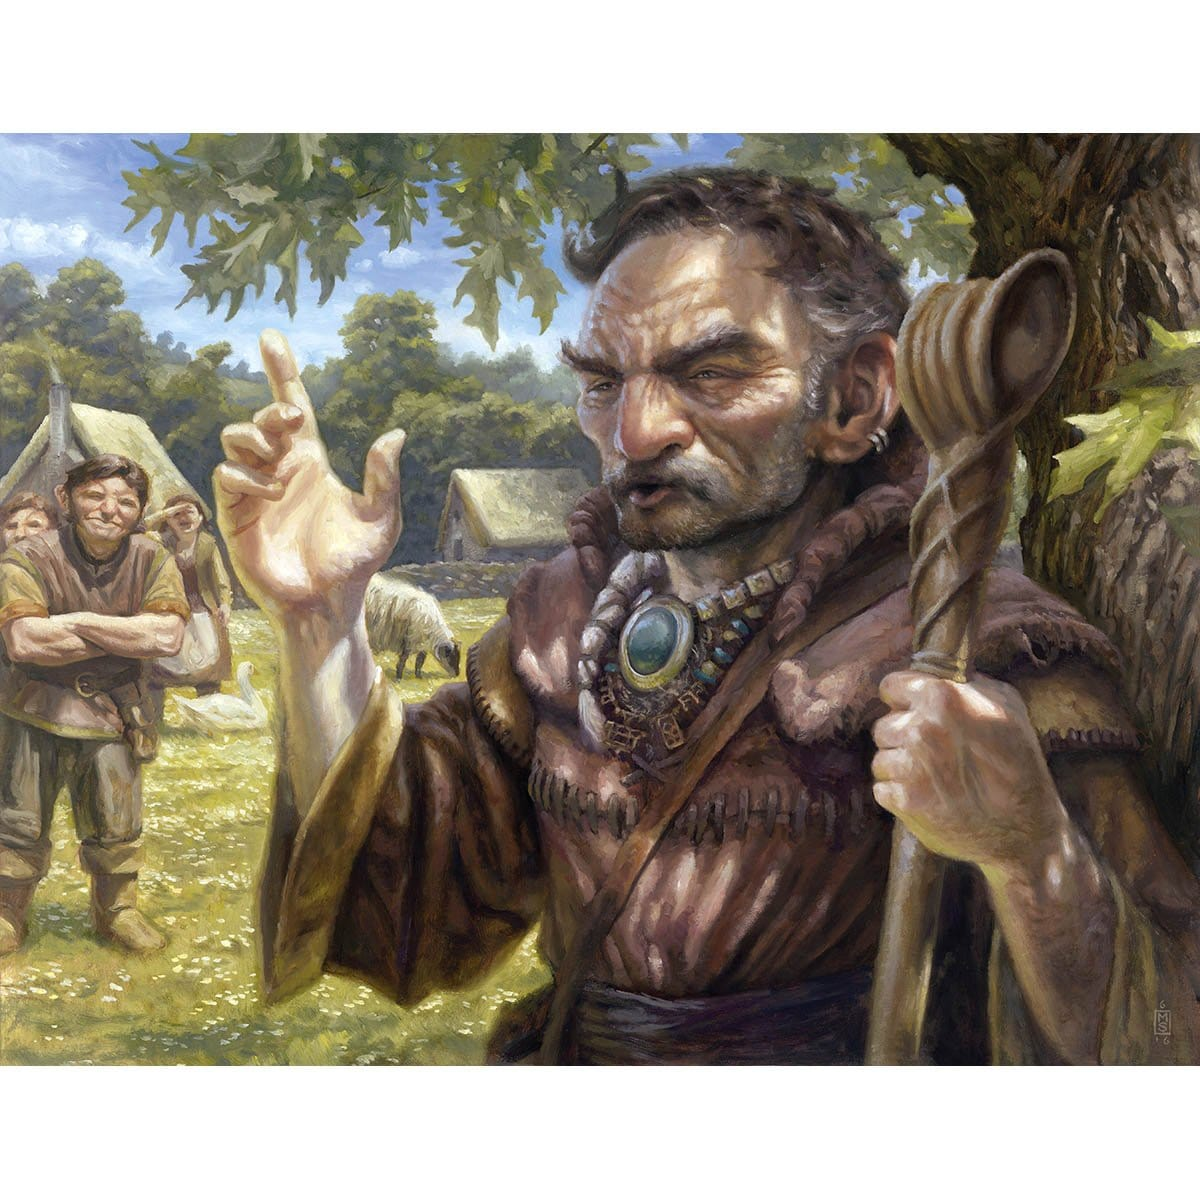 Gaddock Teeg Print - Print - Original Magic Art - Accessories for Magic the Gathering and other card games